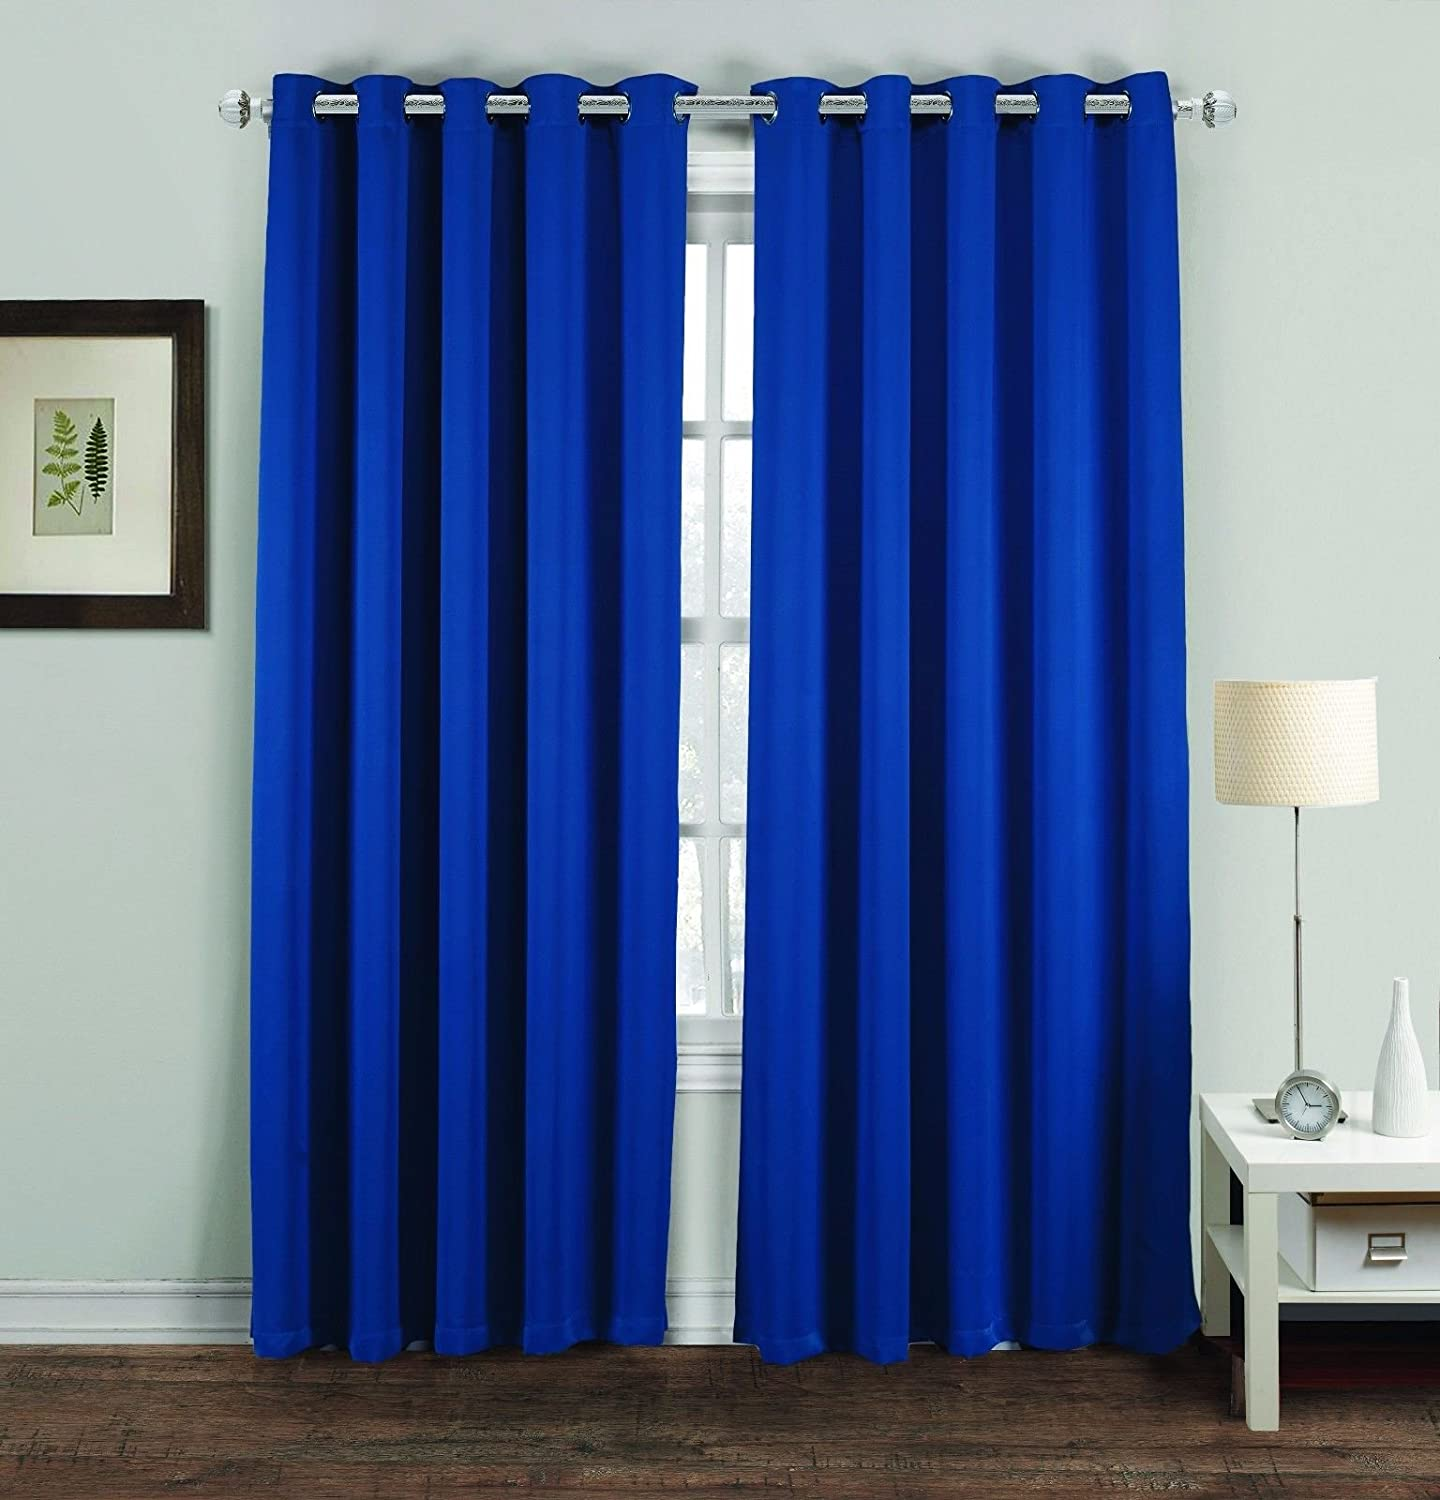 Ring Top Thermal Blackout Curtains Light Reducing Curtains for Plain Room Darkening Living Rooms Nursery Bedrooms 46 x 54 Cream